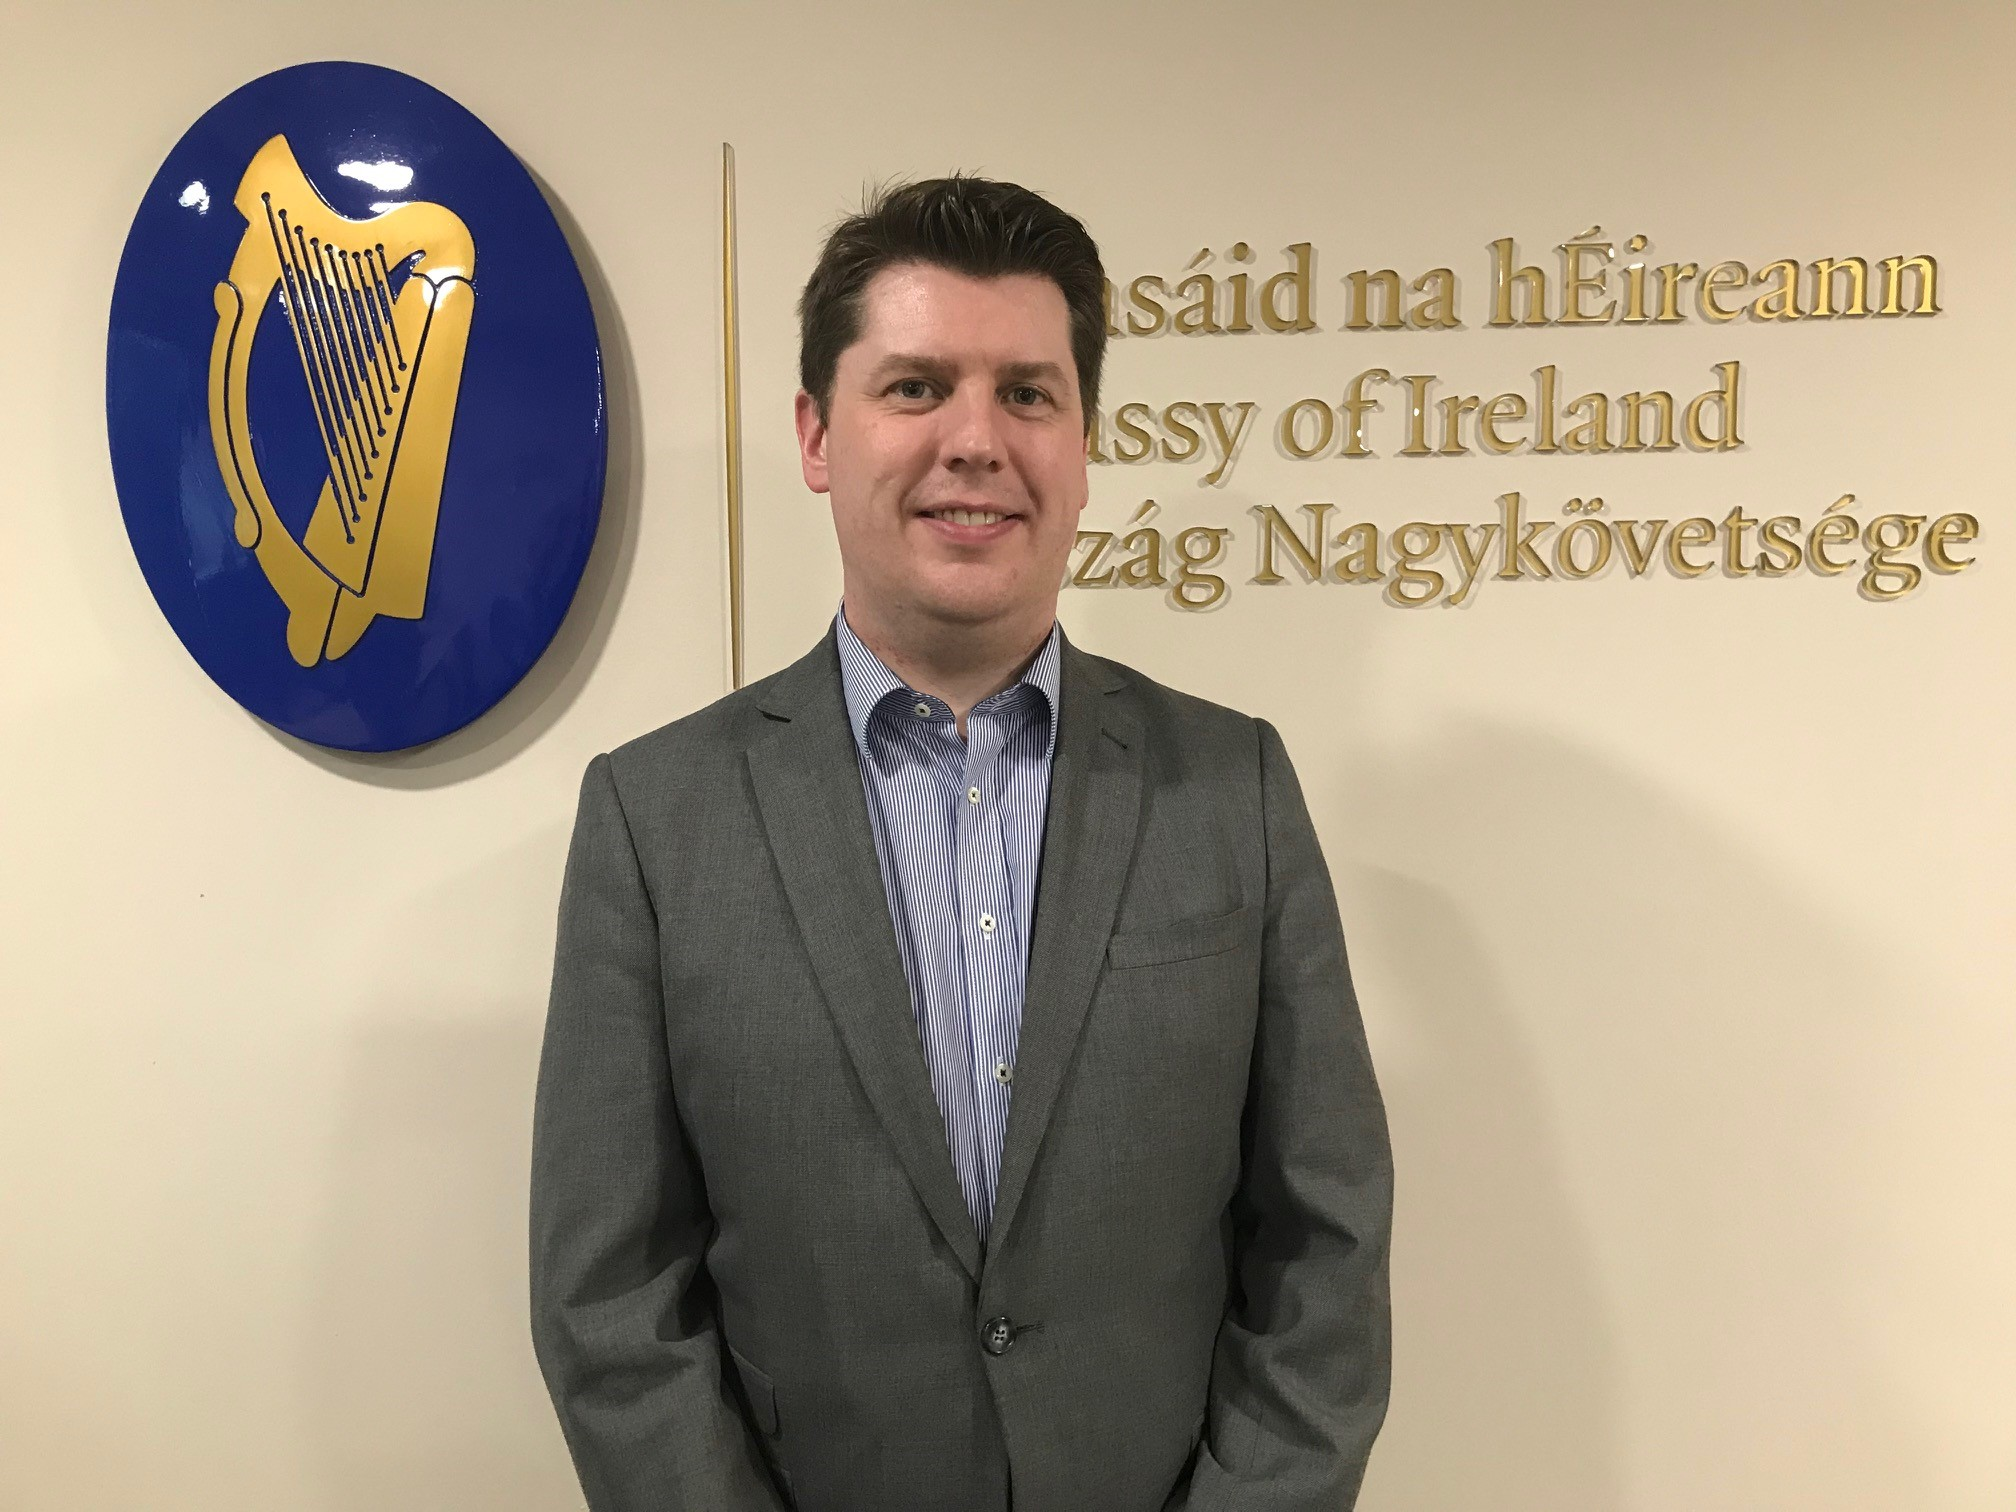 Ronan Gargan, Irish Ambassador To Hungary